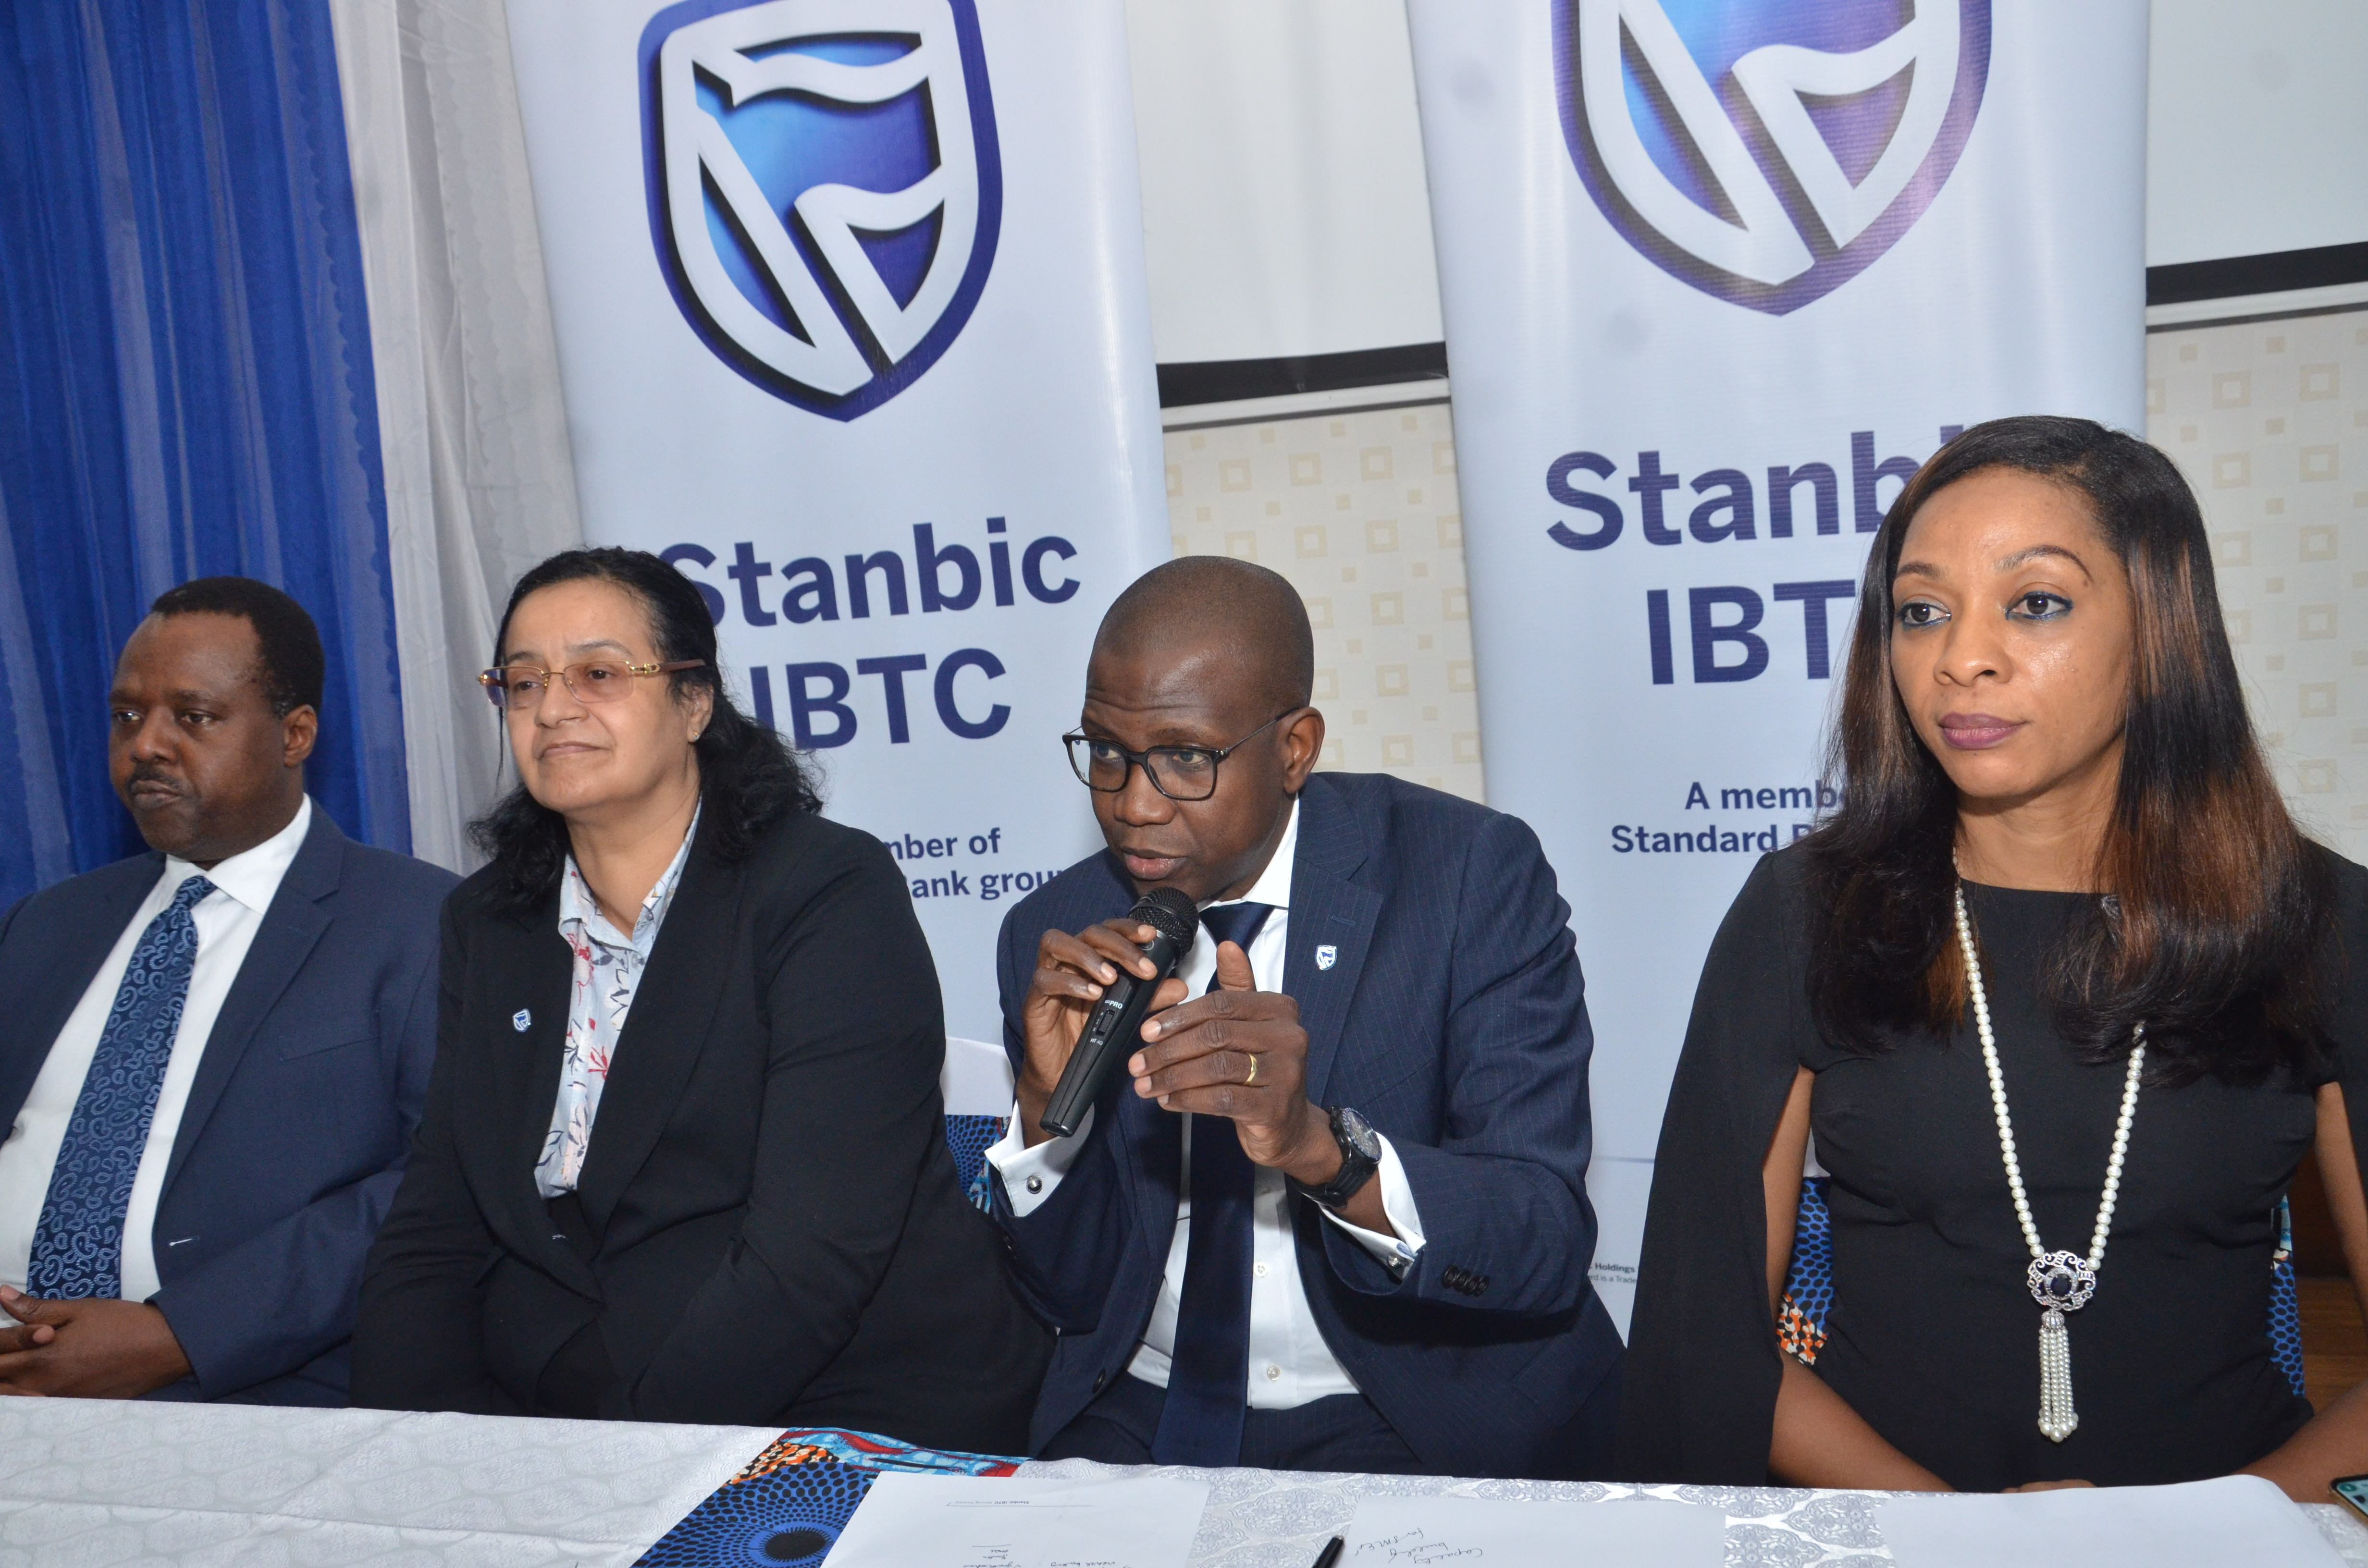 Stanbic IBTC Reveals Reason for Delay in Filing H1 2020 Audited Results